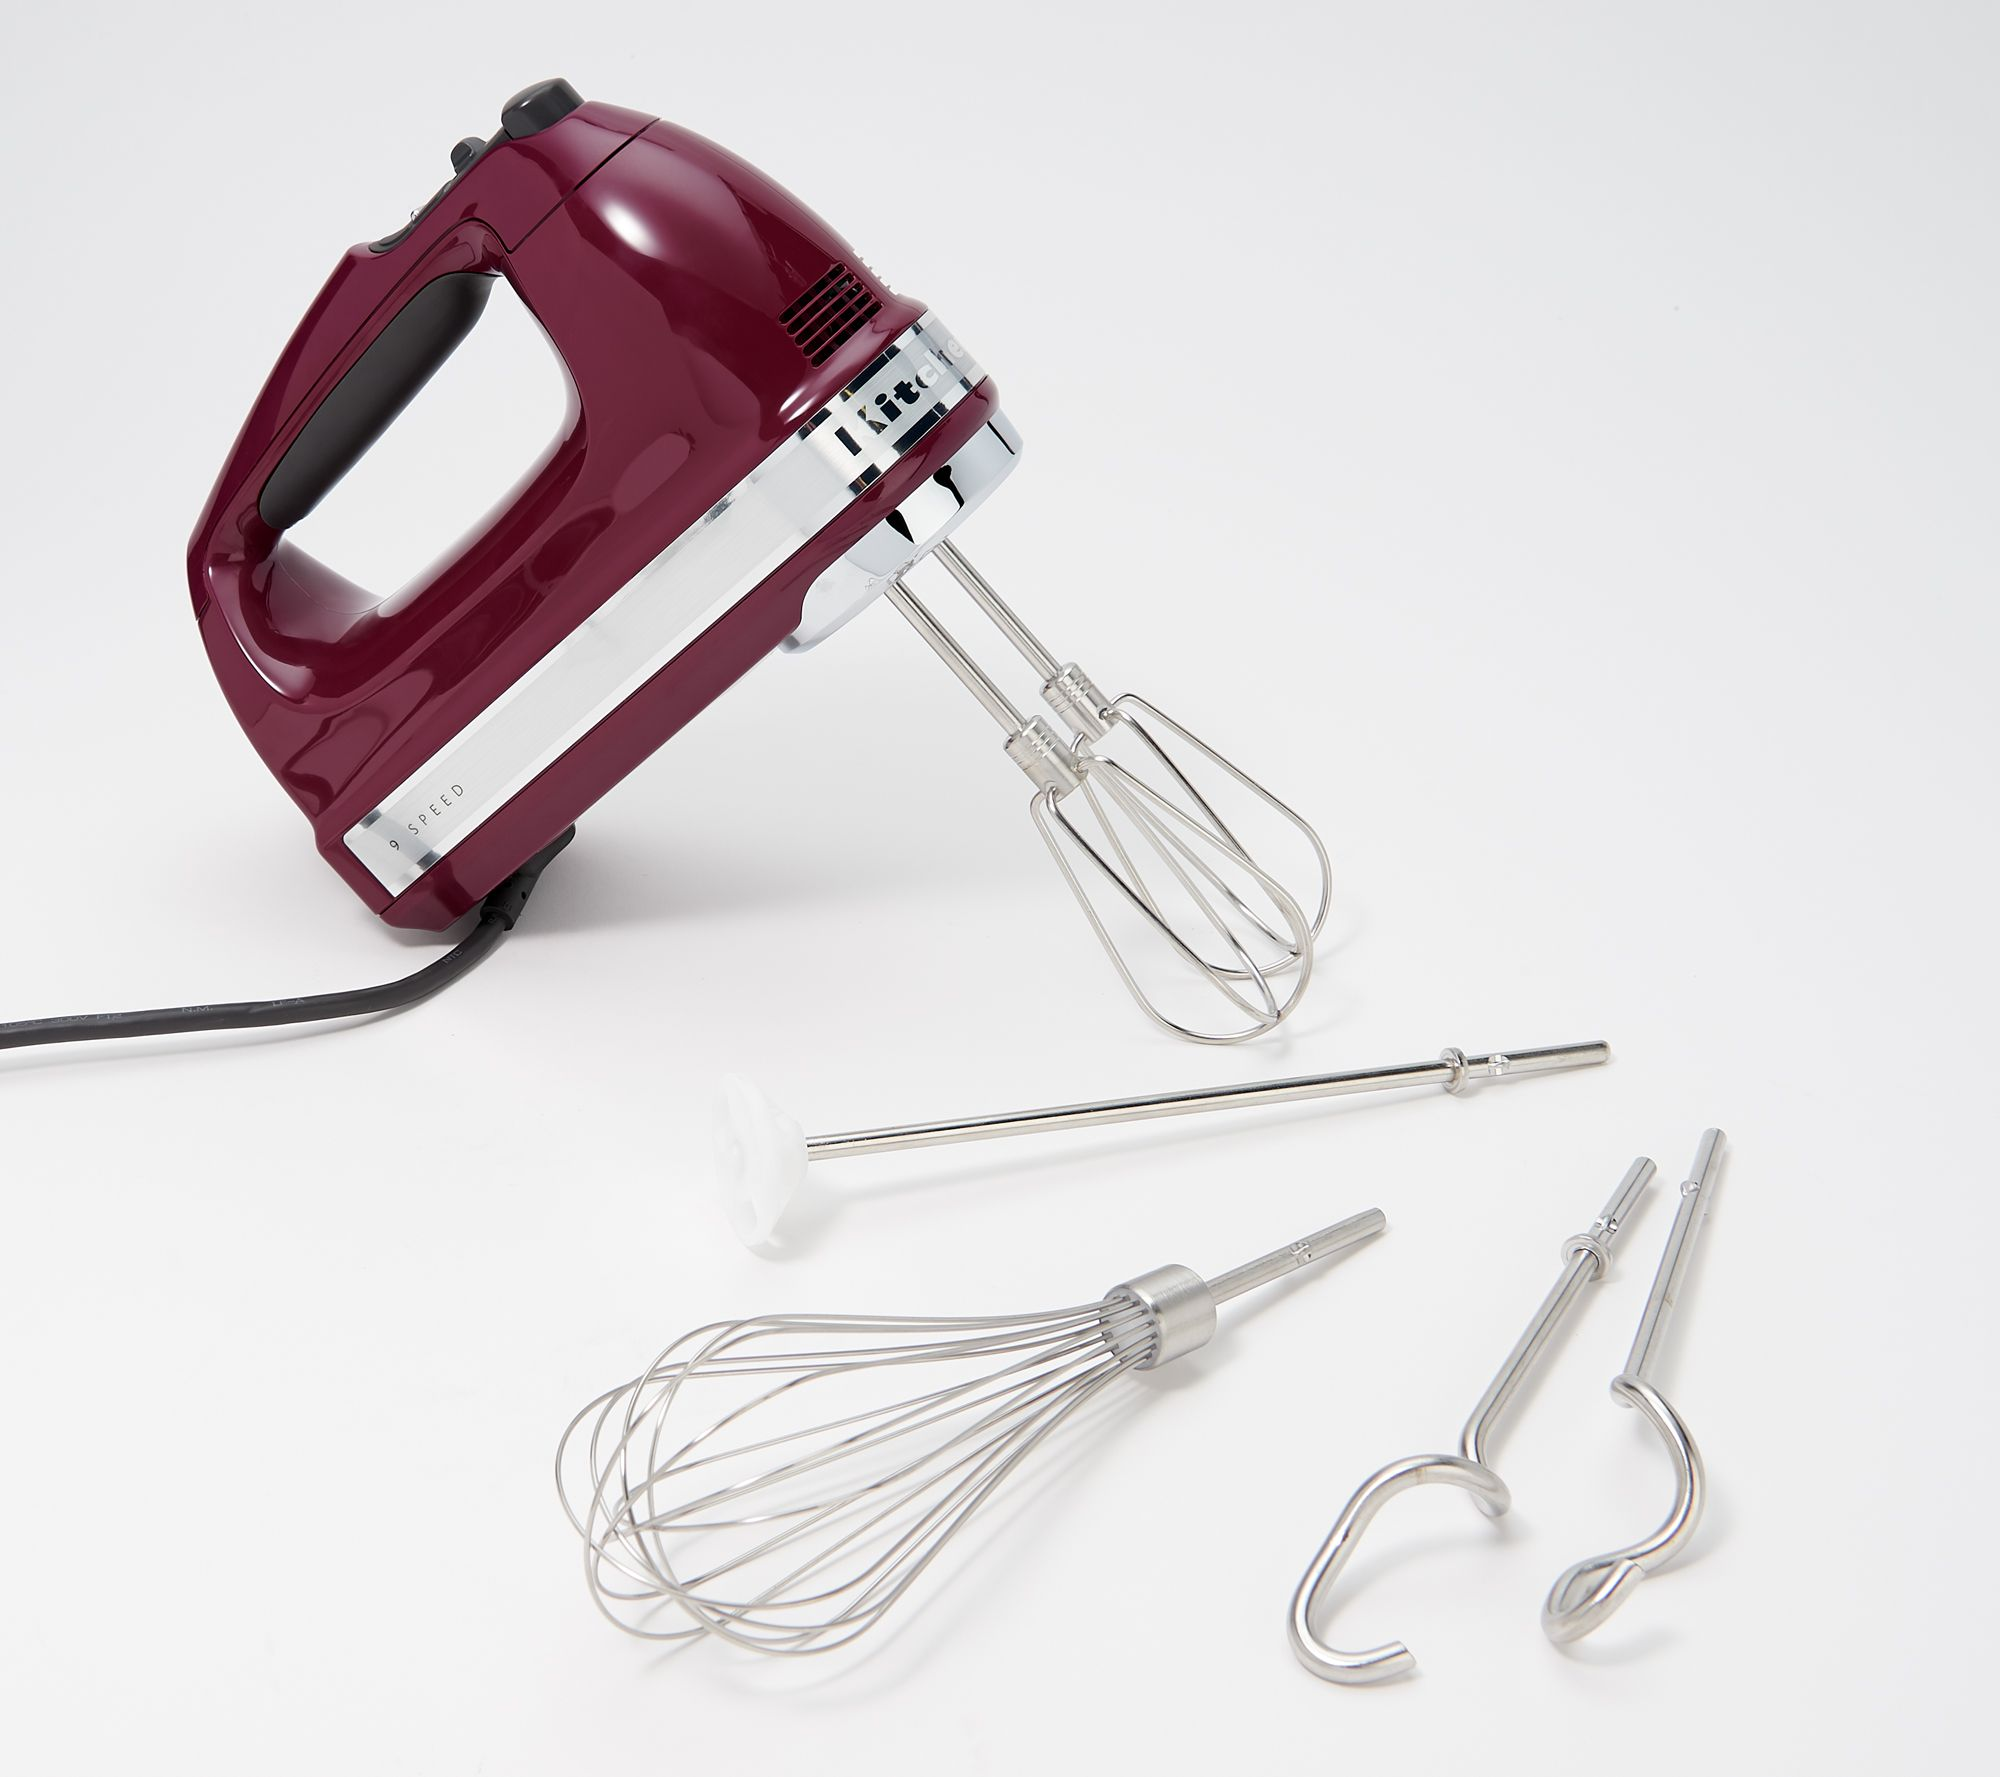 Take 21% off a KitchenAid 9-speed hand mixer